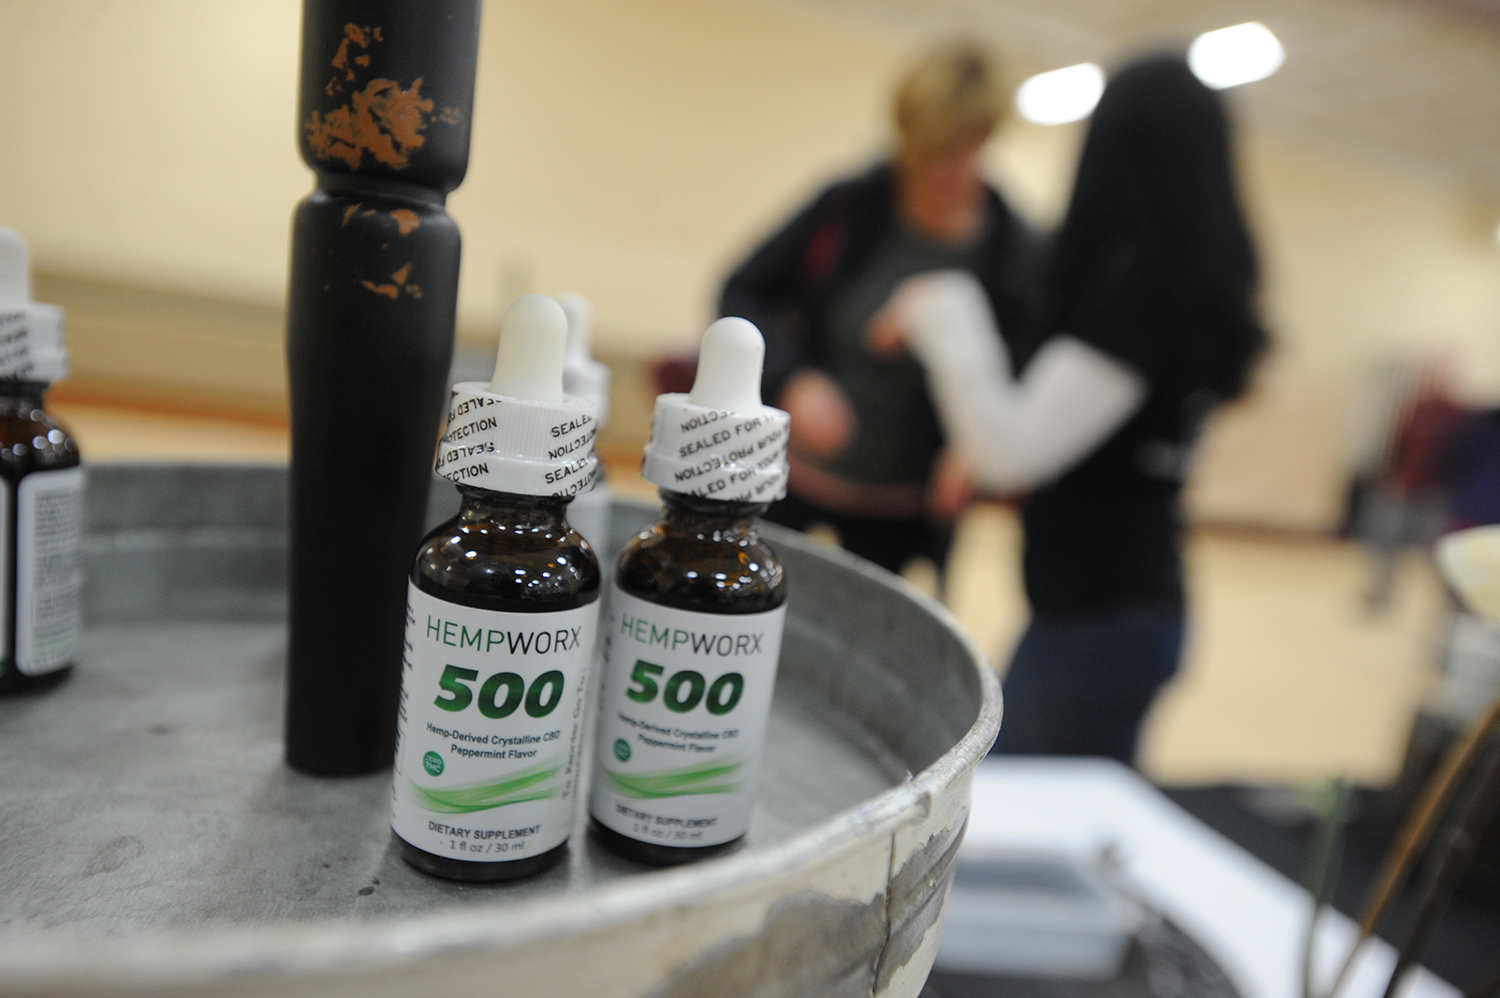 Teressa Sworsky talks with potential customers and explains the benefits of hemp oil and other CBD products at the Mokena Park District's January Flea Market on Jan. 13, 2019 in Mokena, Ill.  (Warren Skalski/Chicago Tribune/TNS)